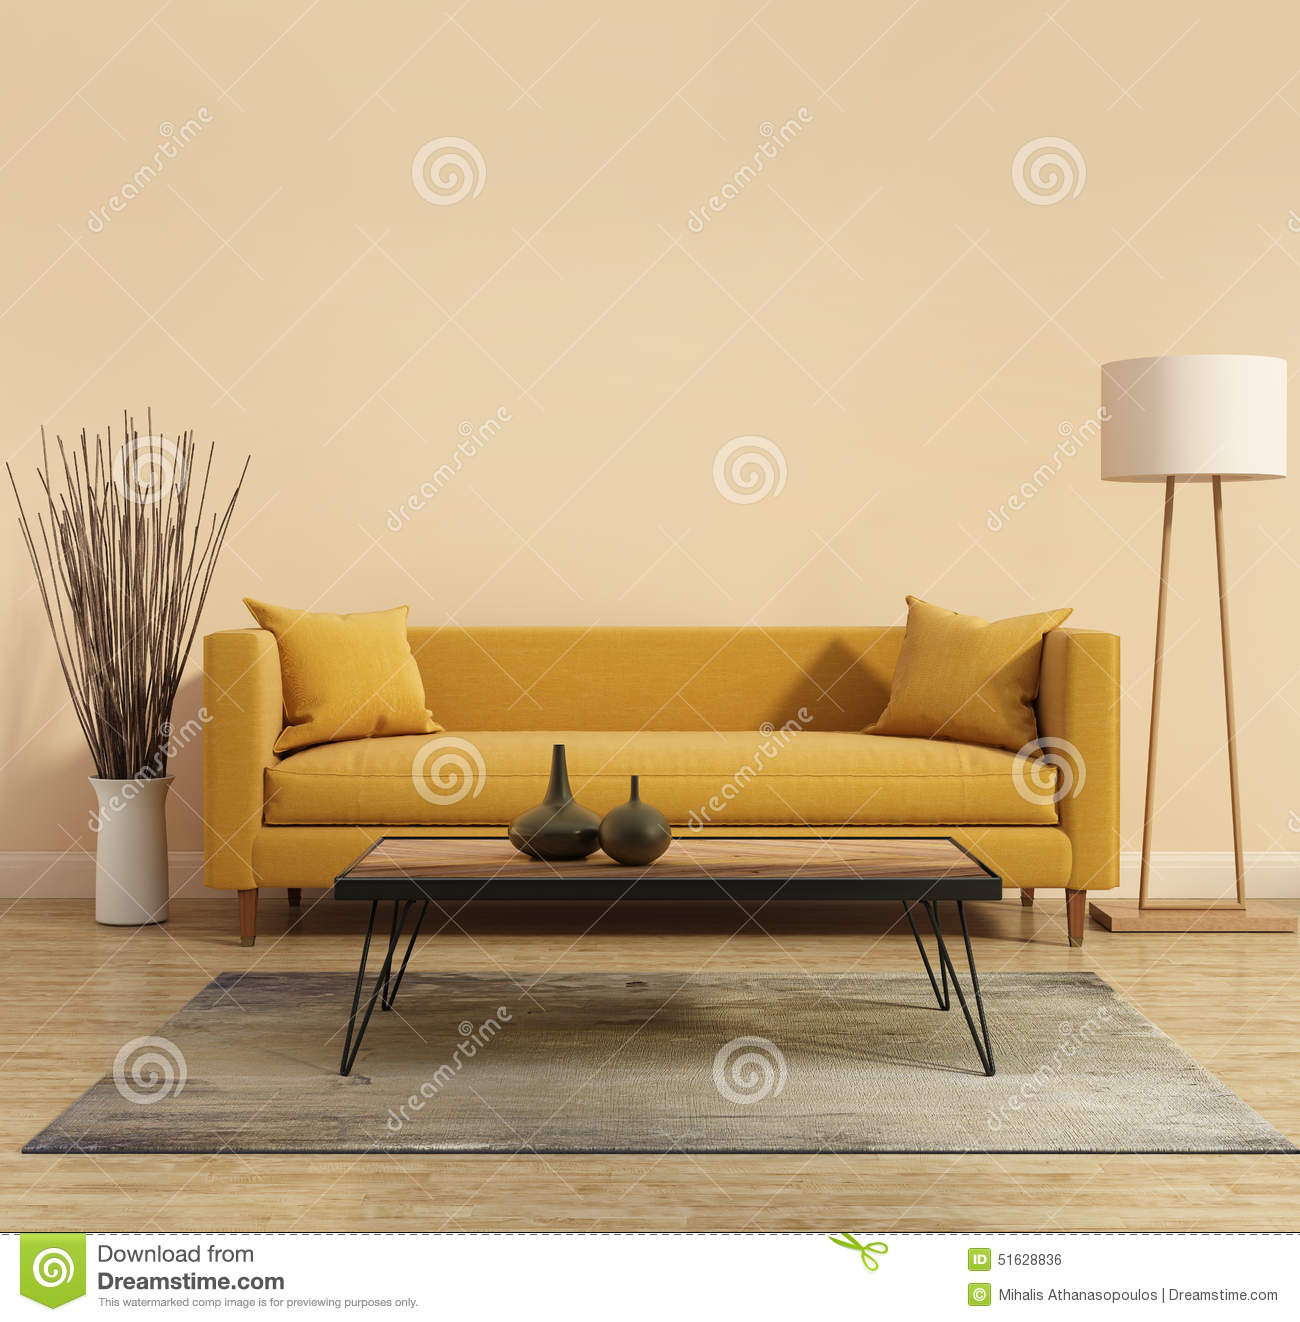 yellow sofa table leather restoration sheffield modern interior with a in the living